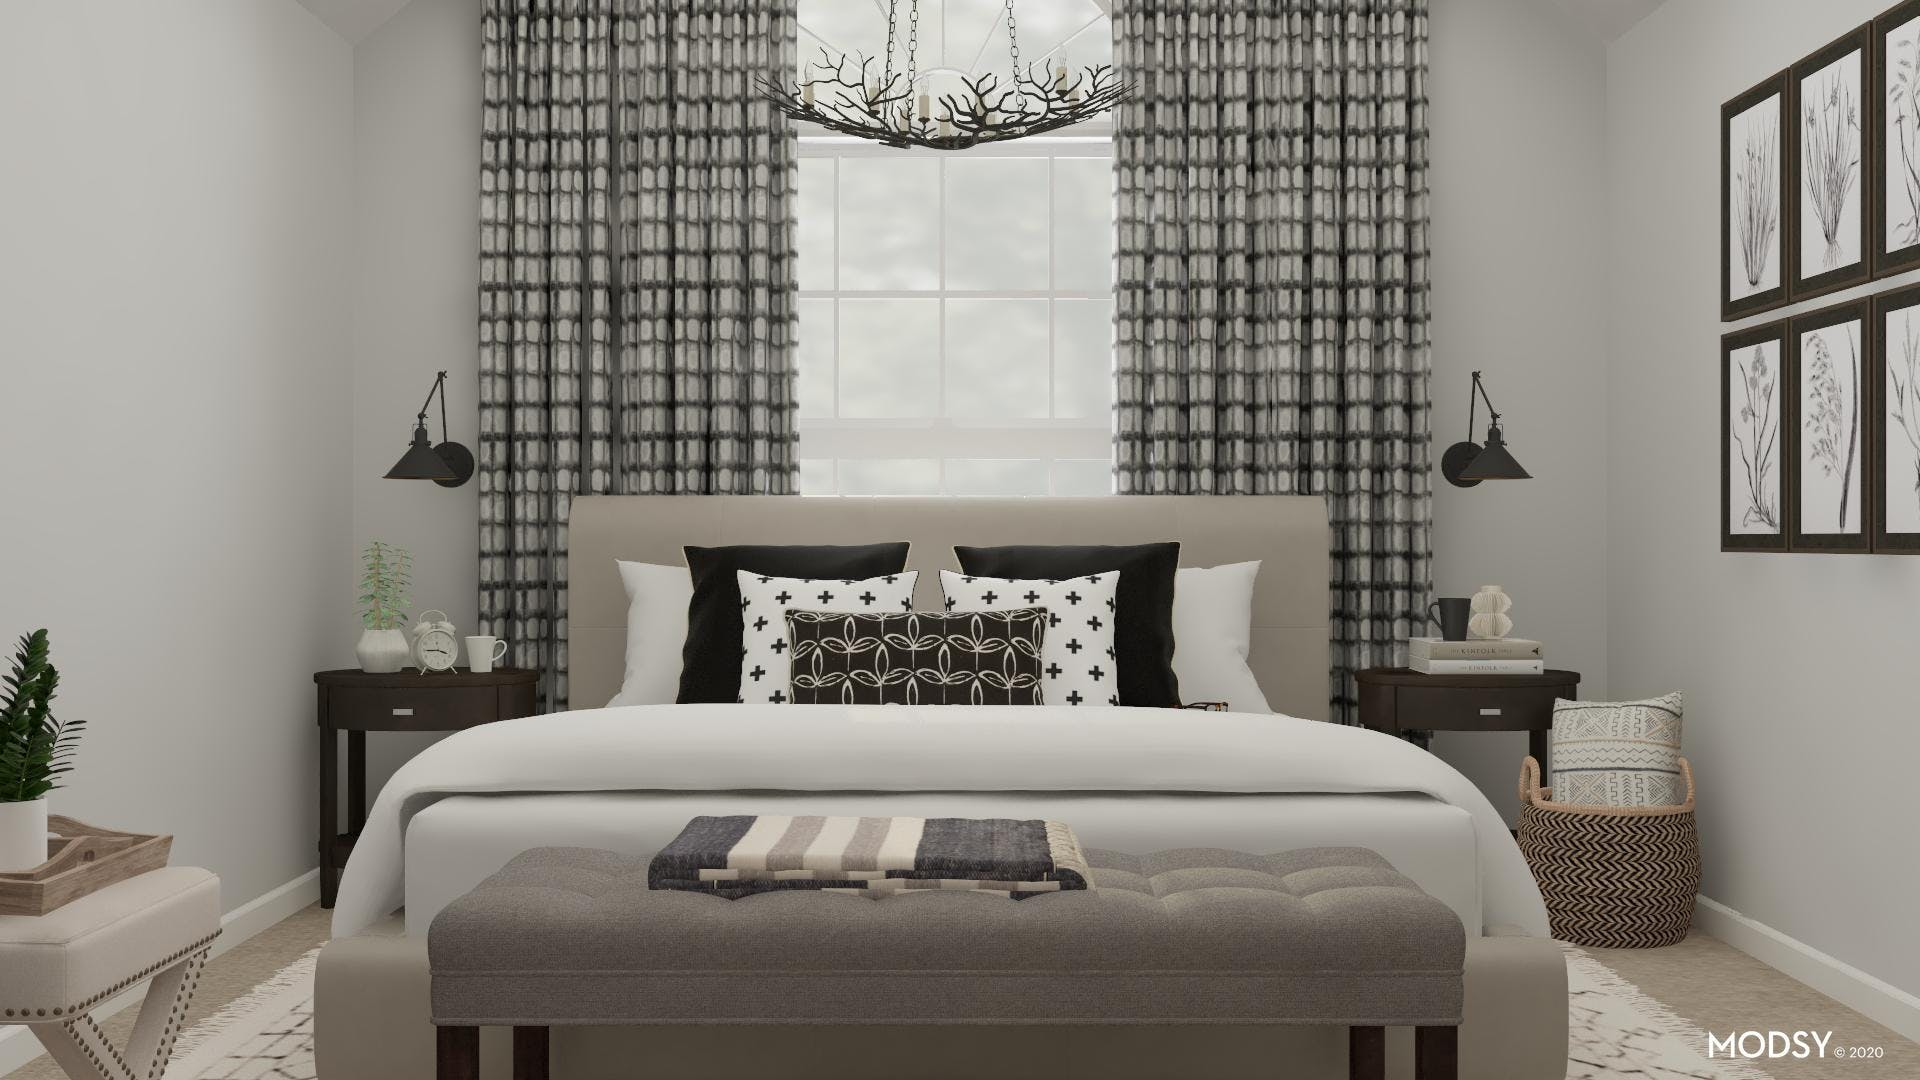 A Traditional Bedroom With Black & White Accents!